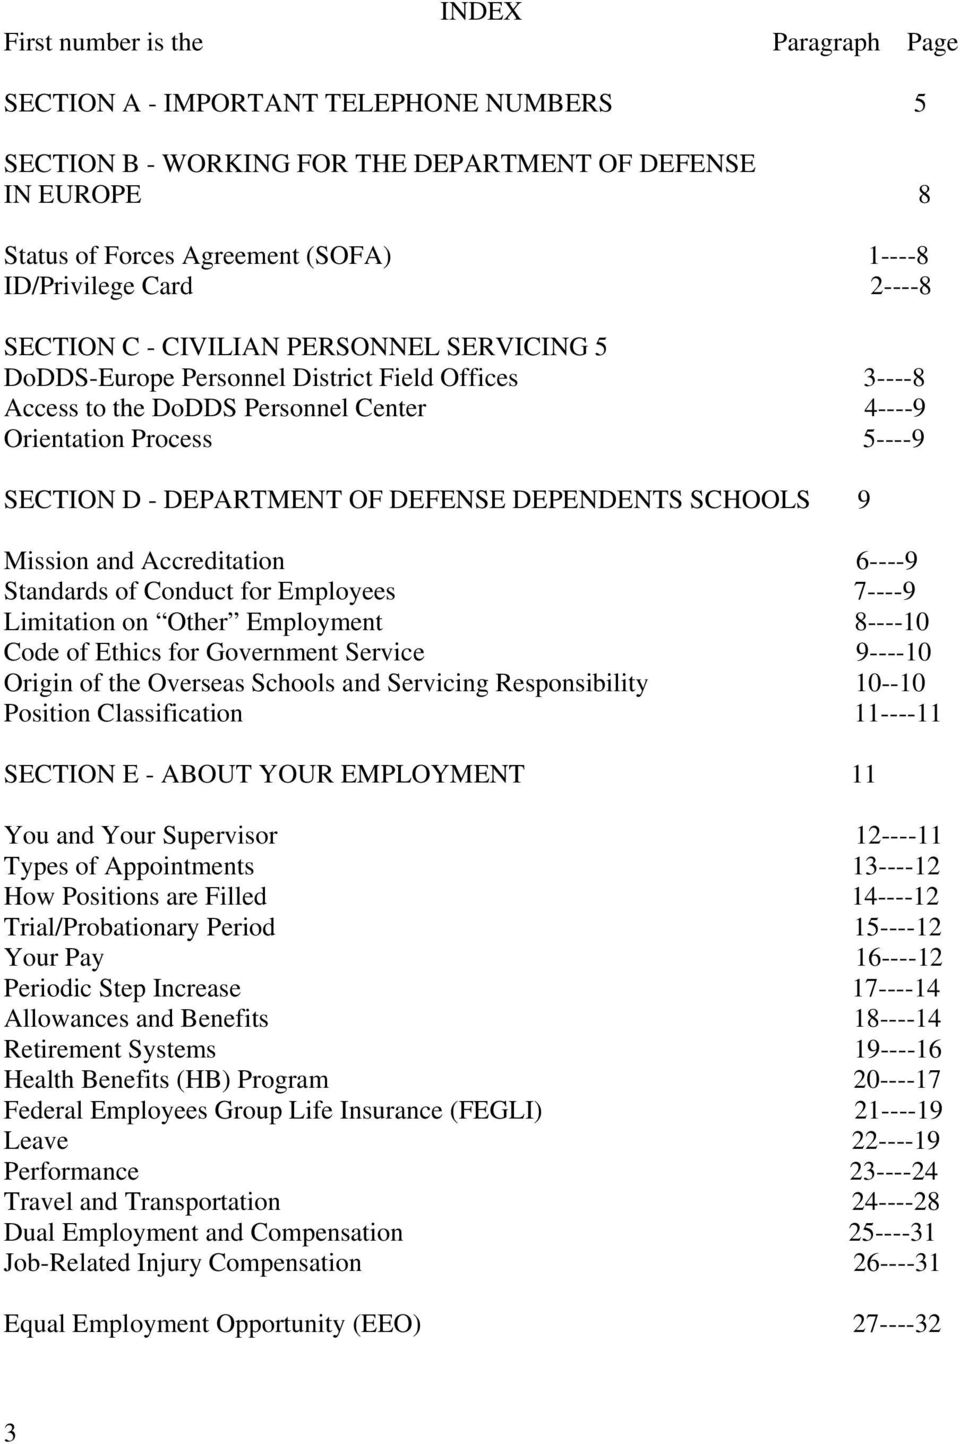 DEPARTMENT OF DEFENSE DEPENDENTS SCHOOLS 9 Mission and Accreditation 6----9 Standards of Conduct for Employees 7----9 Limitation on Other Employment 8----10 Code of Ethics for Government Service